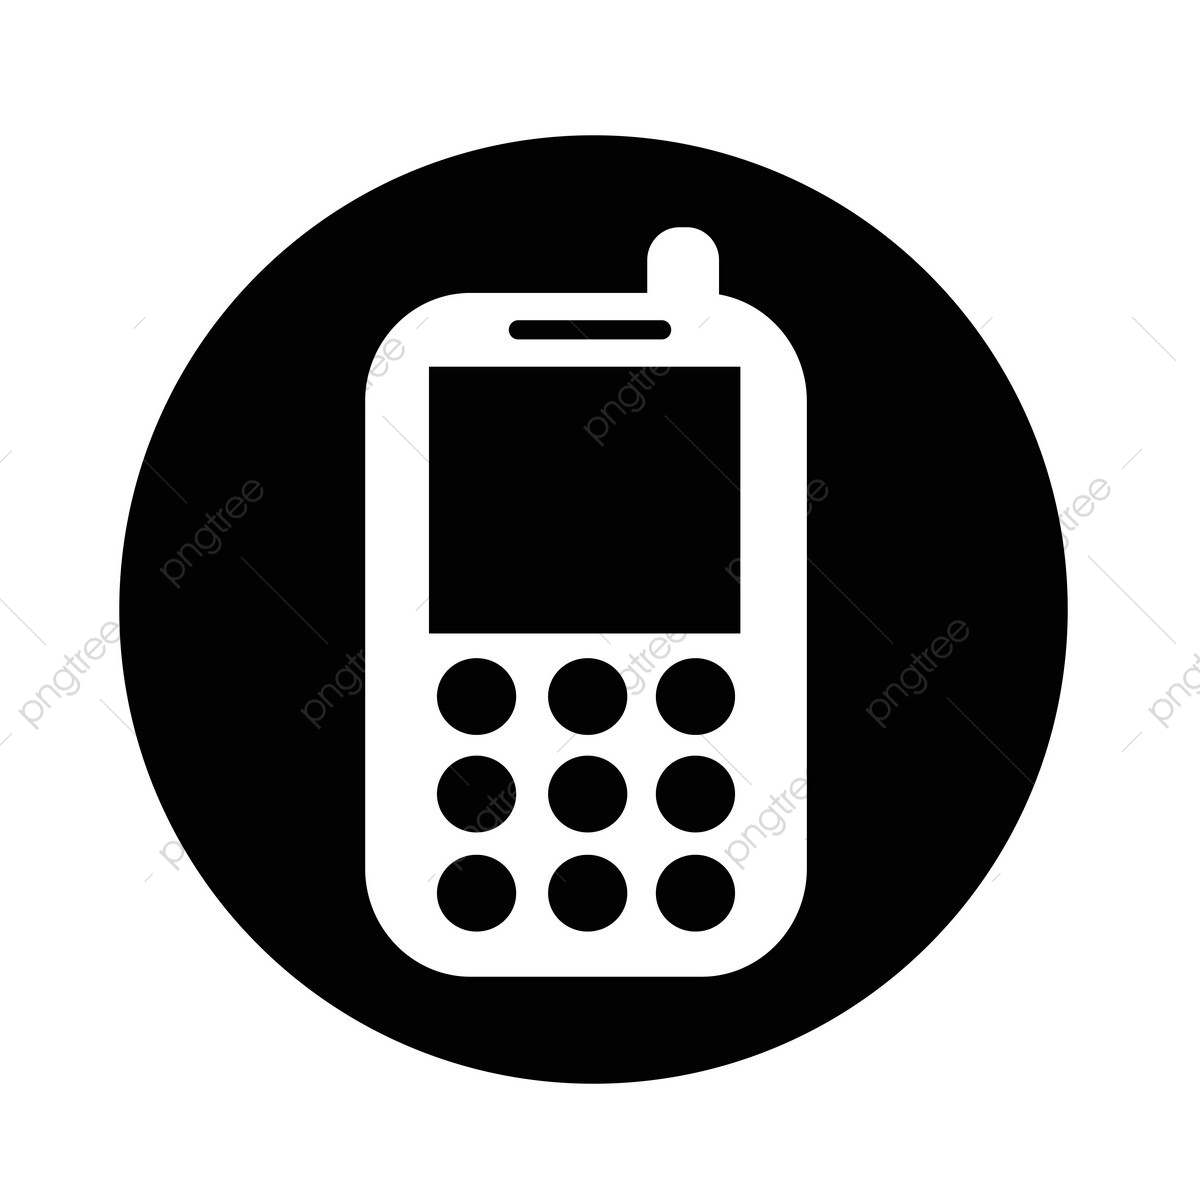 Mobile Phone Icon Phone Icons Mobile Icons Phone Png And Vector With Transparent Background For Free Download